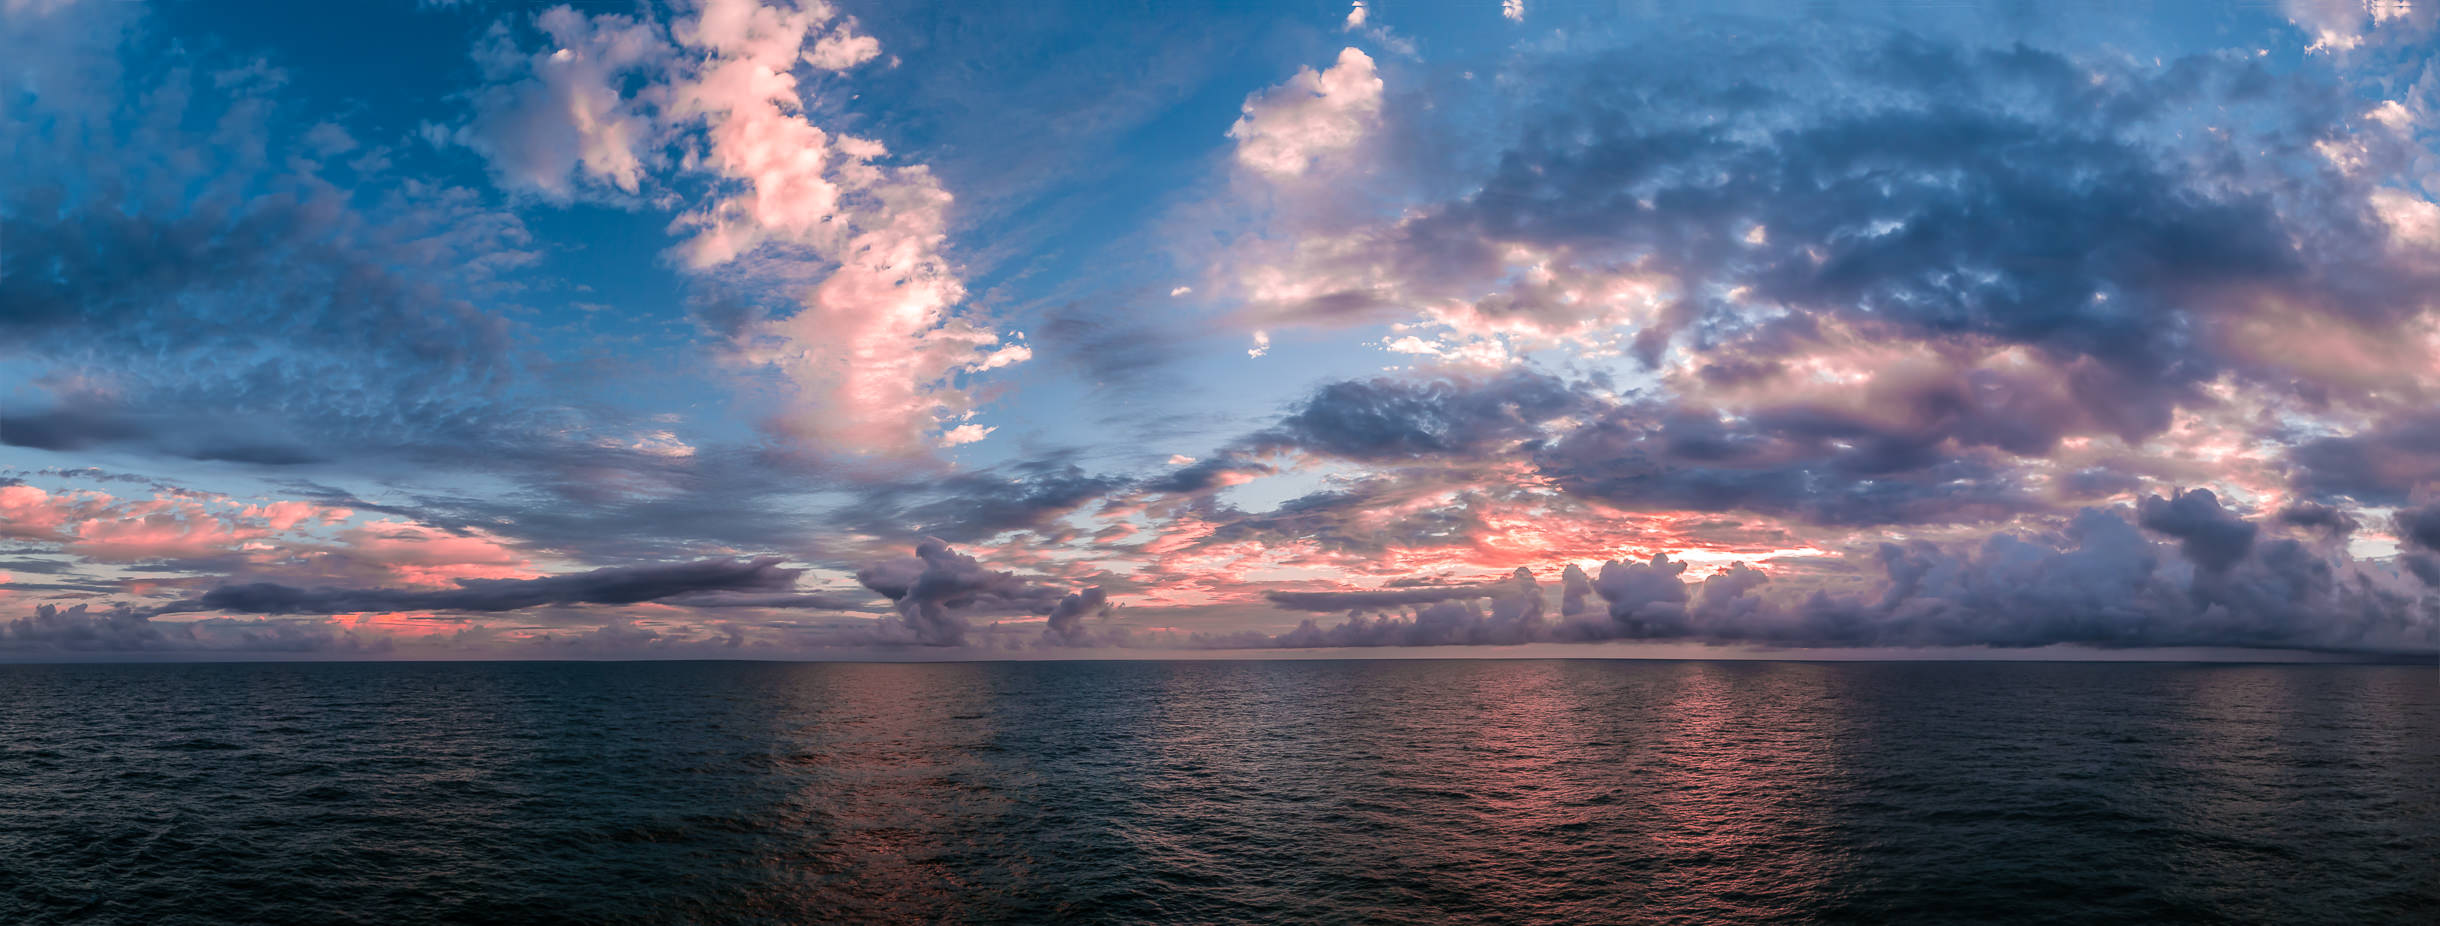 The first light of morning breaks over the Gulf of Mexico, somewhere north of the Yucatan Peninsula, Mexico.